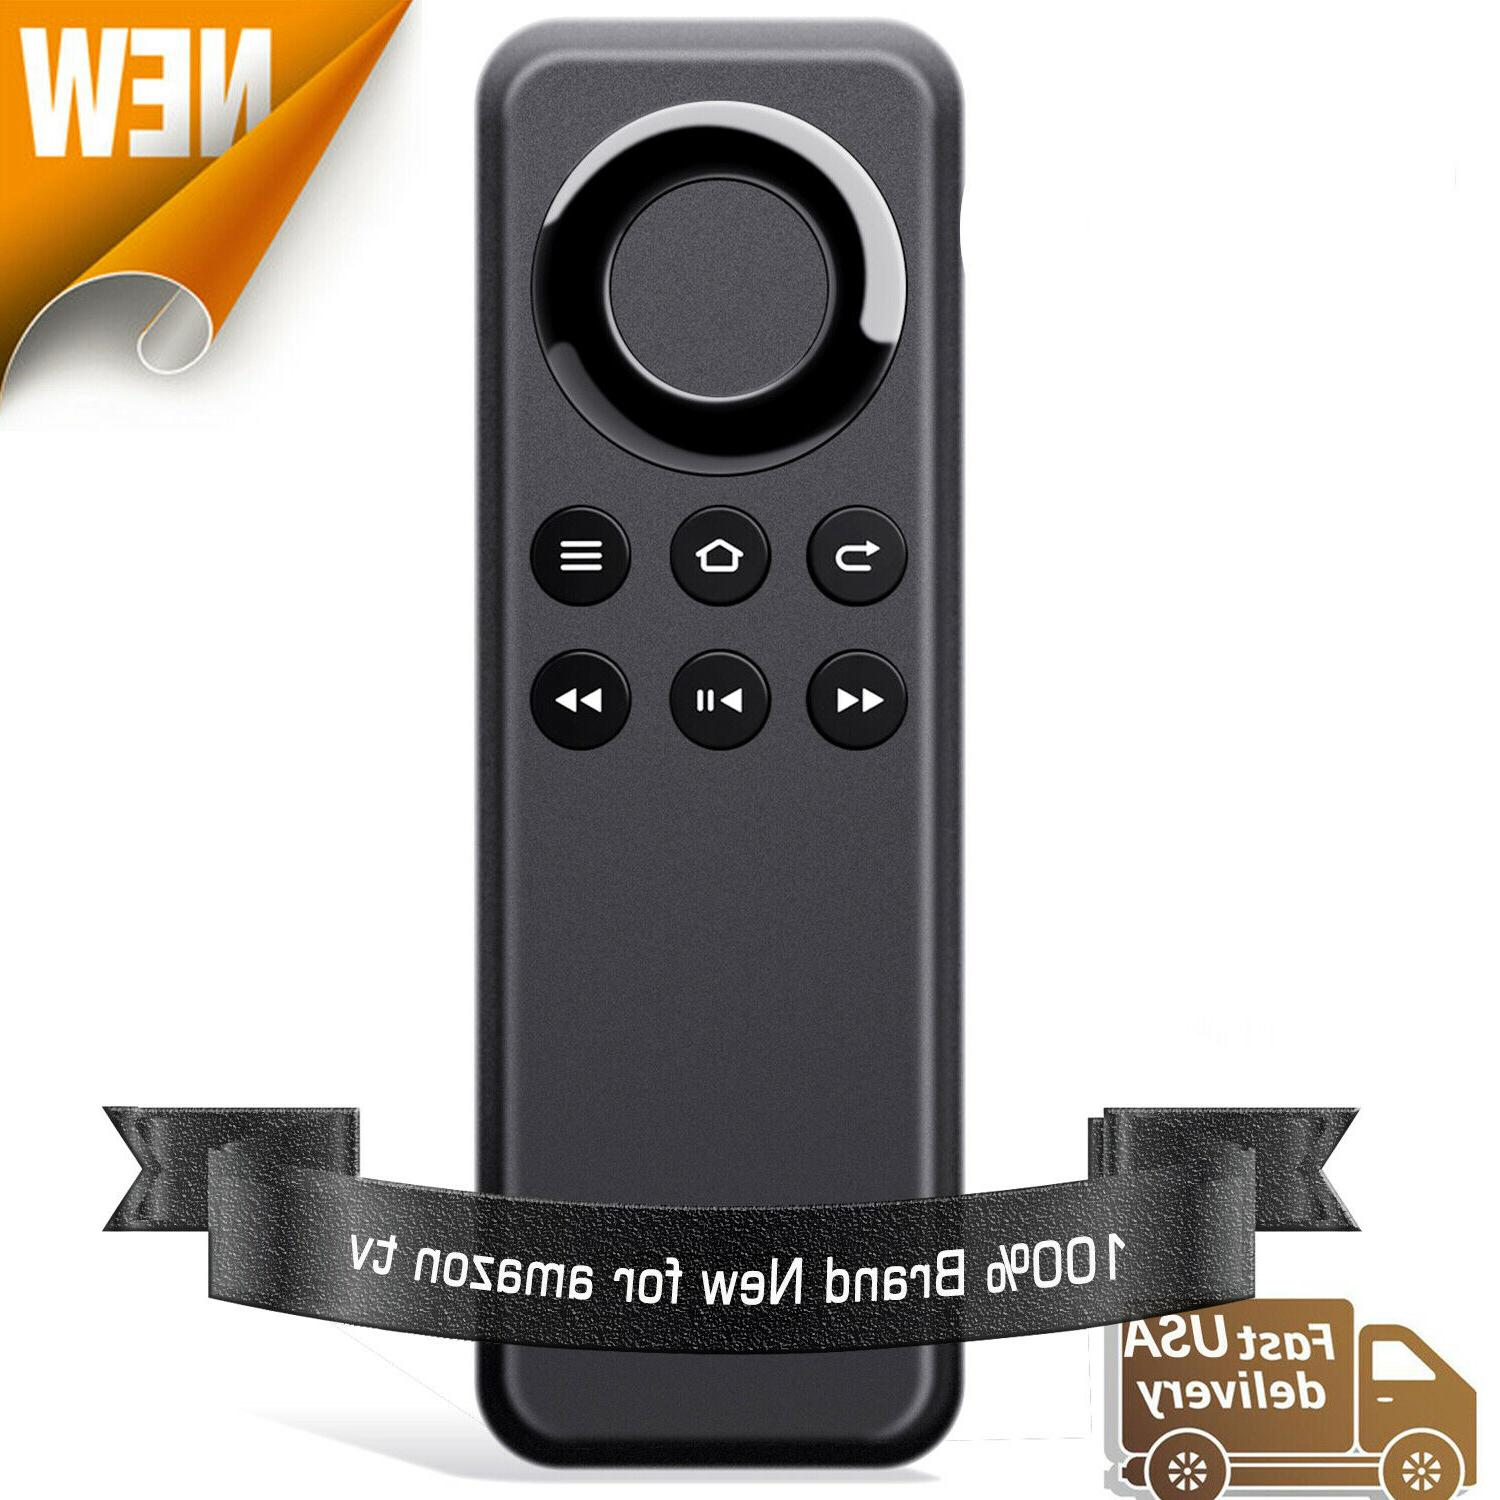 Remote Control Amazon Fire TV Streaming Box